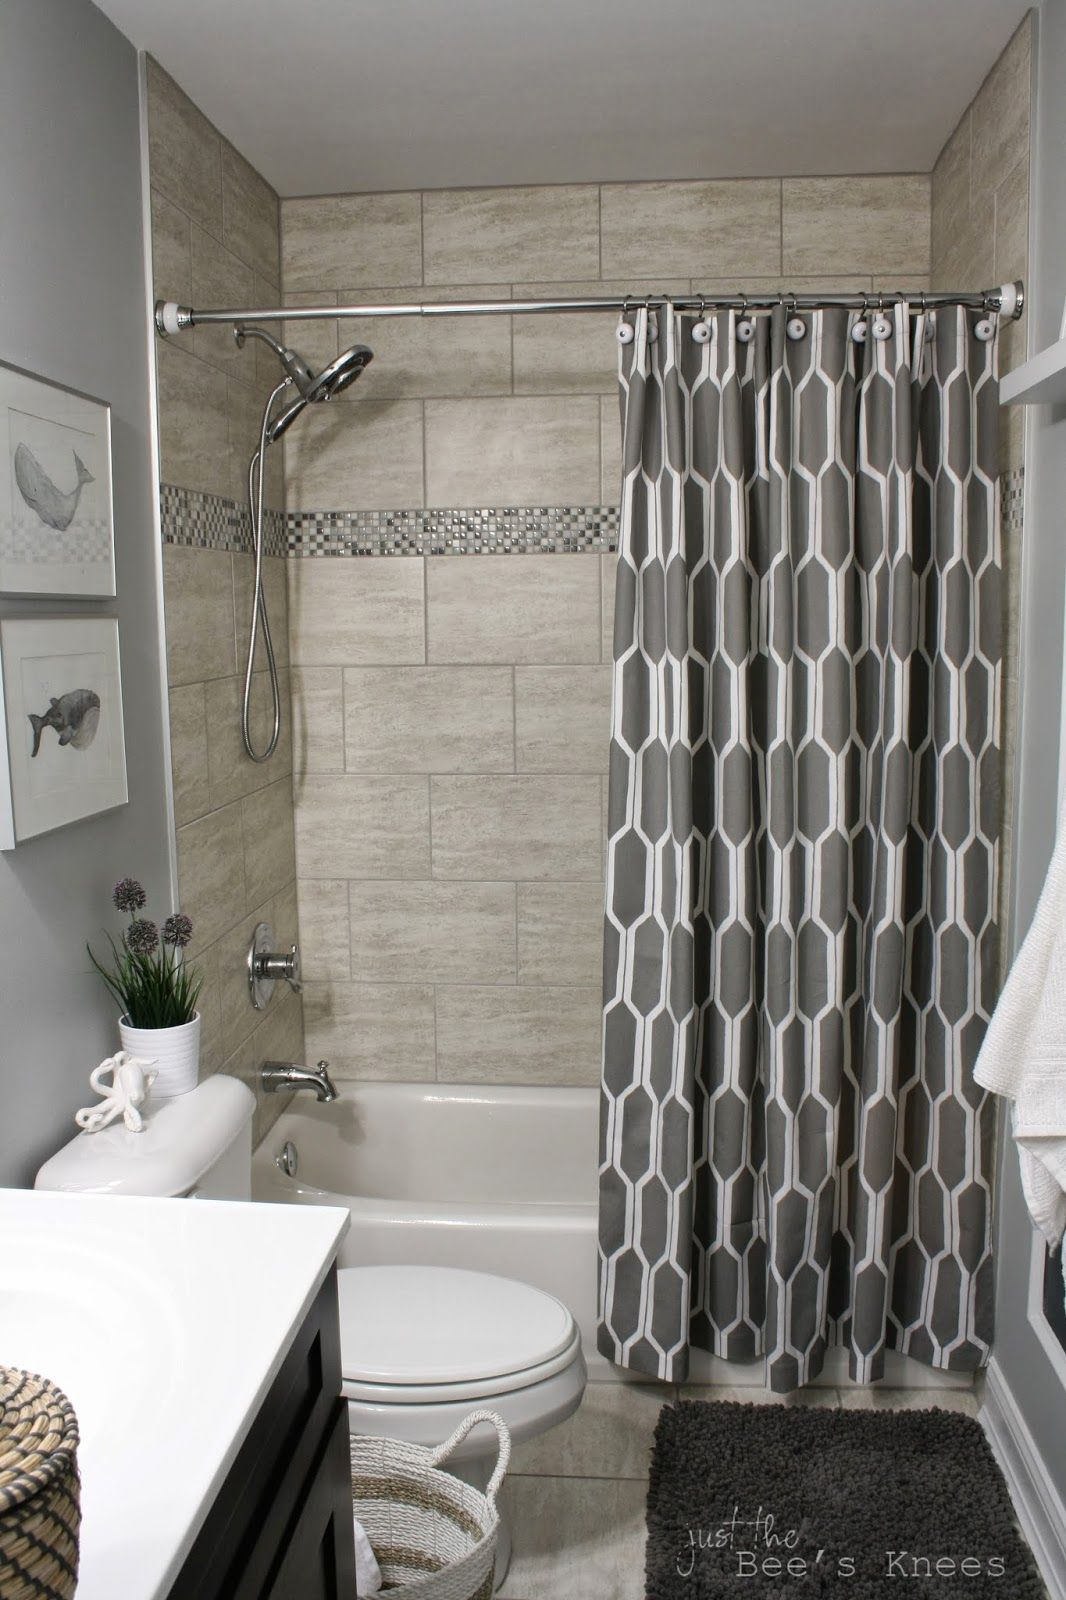 Honeycomb Shower Curtain from west elm House Remodel Pinterest